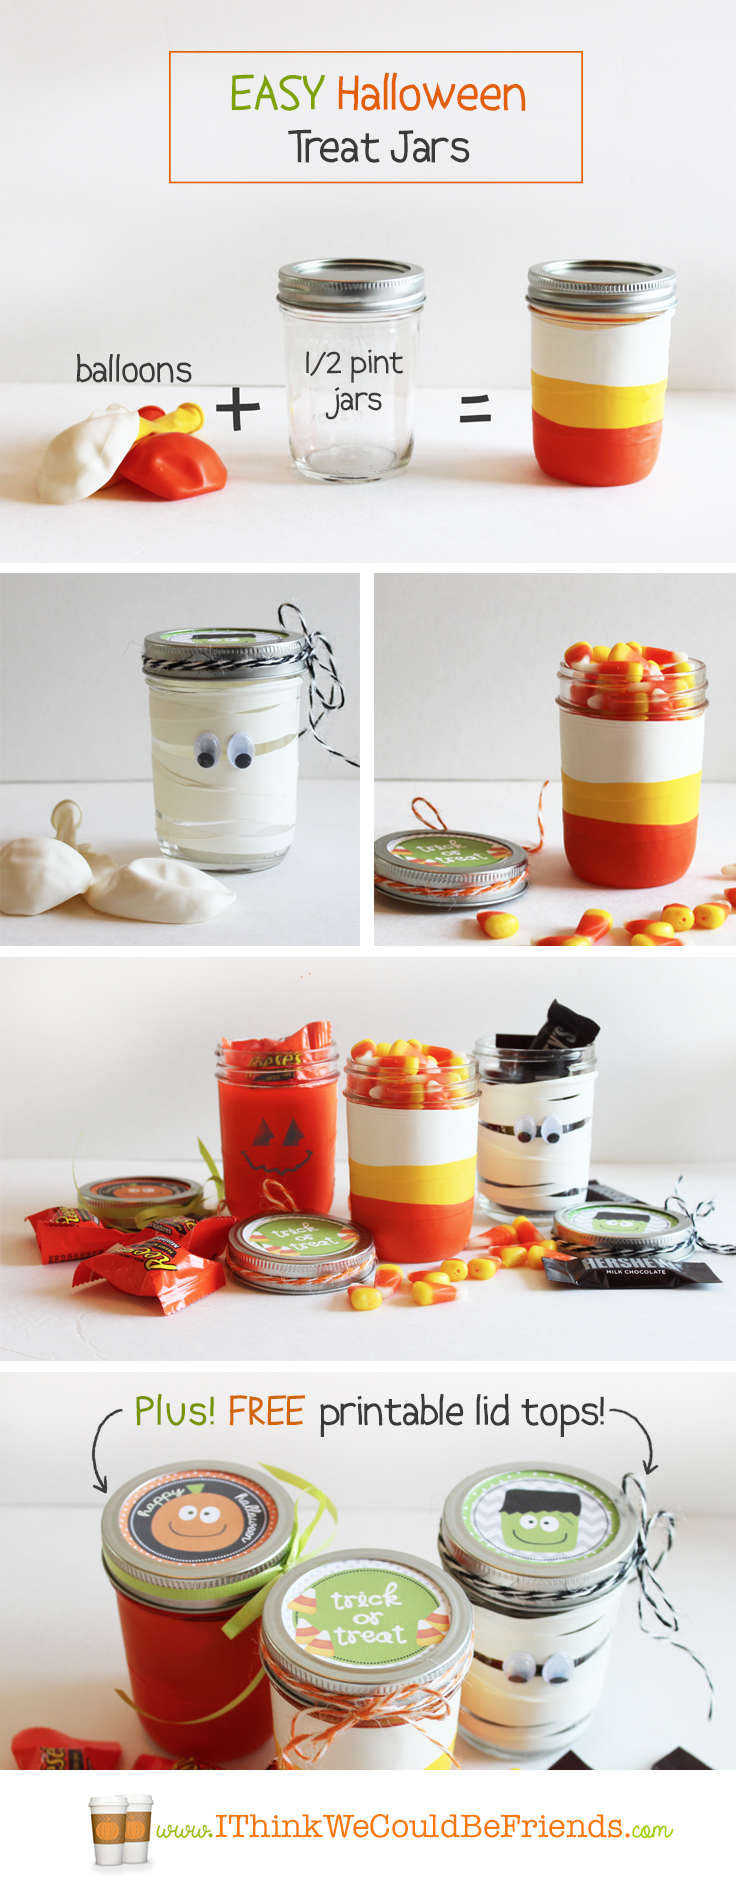 Easy Halloween Treat Jars: Just cut the tops & bottoms off of balloons & stretch over mason jars for cute Halloween treat jars! Plus FREE printable toppers!